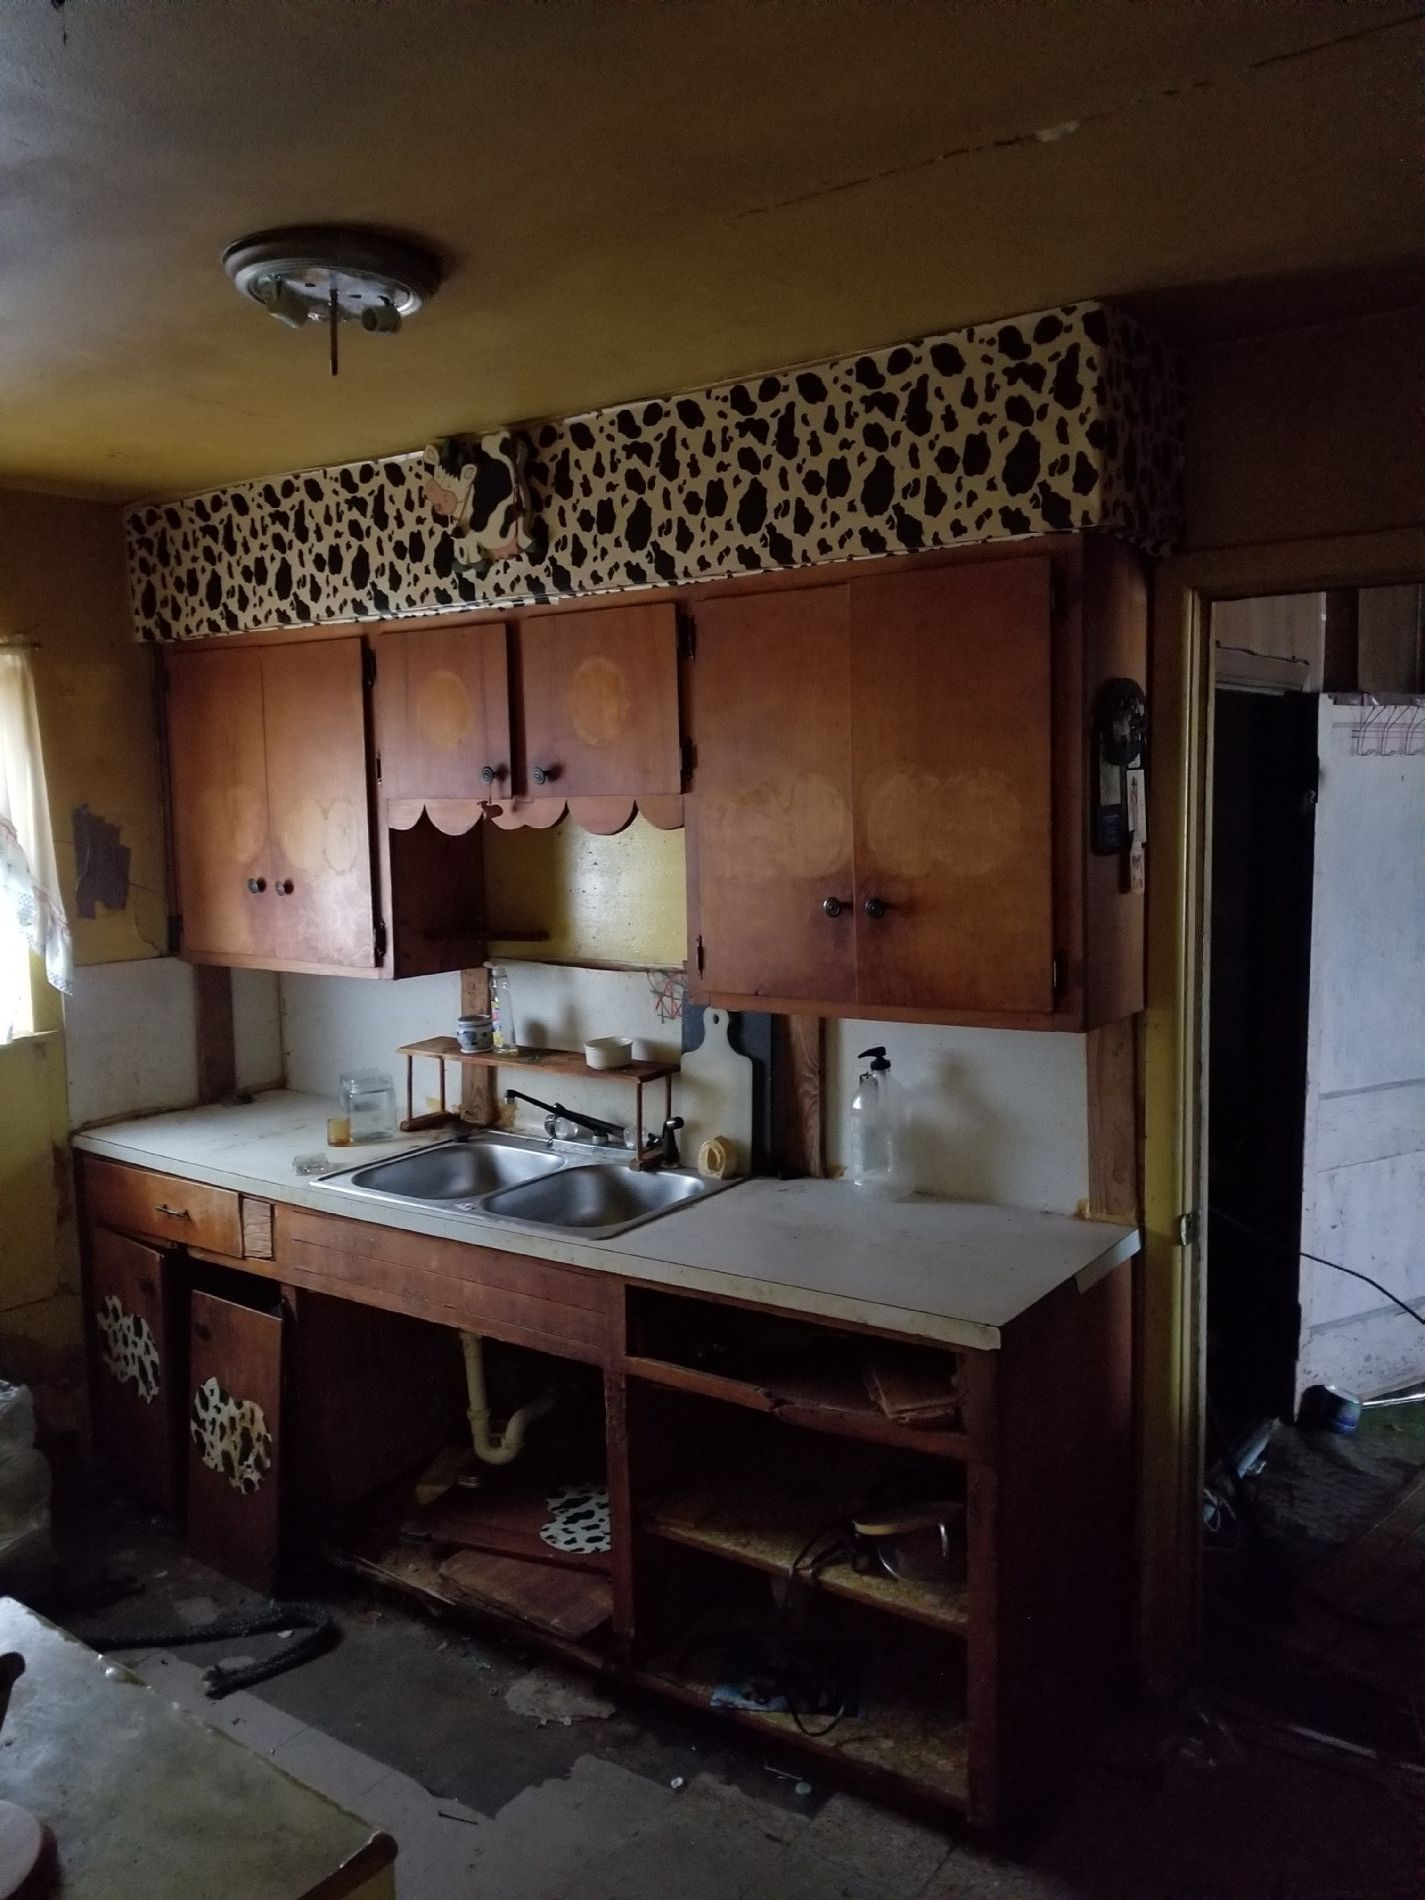 Nice Donu0027t Miss Out On This Fixer Upper Priced At Only $53.7K Appraised At 95K!!    1901 Glenfield Dr, Corpus Christi TX